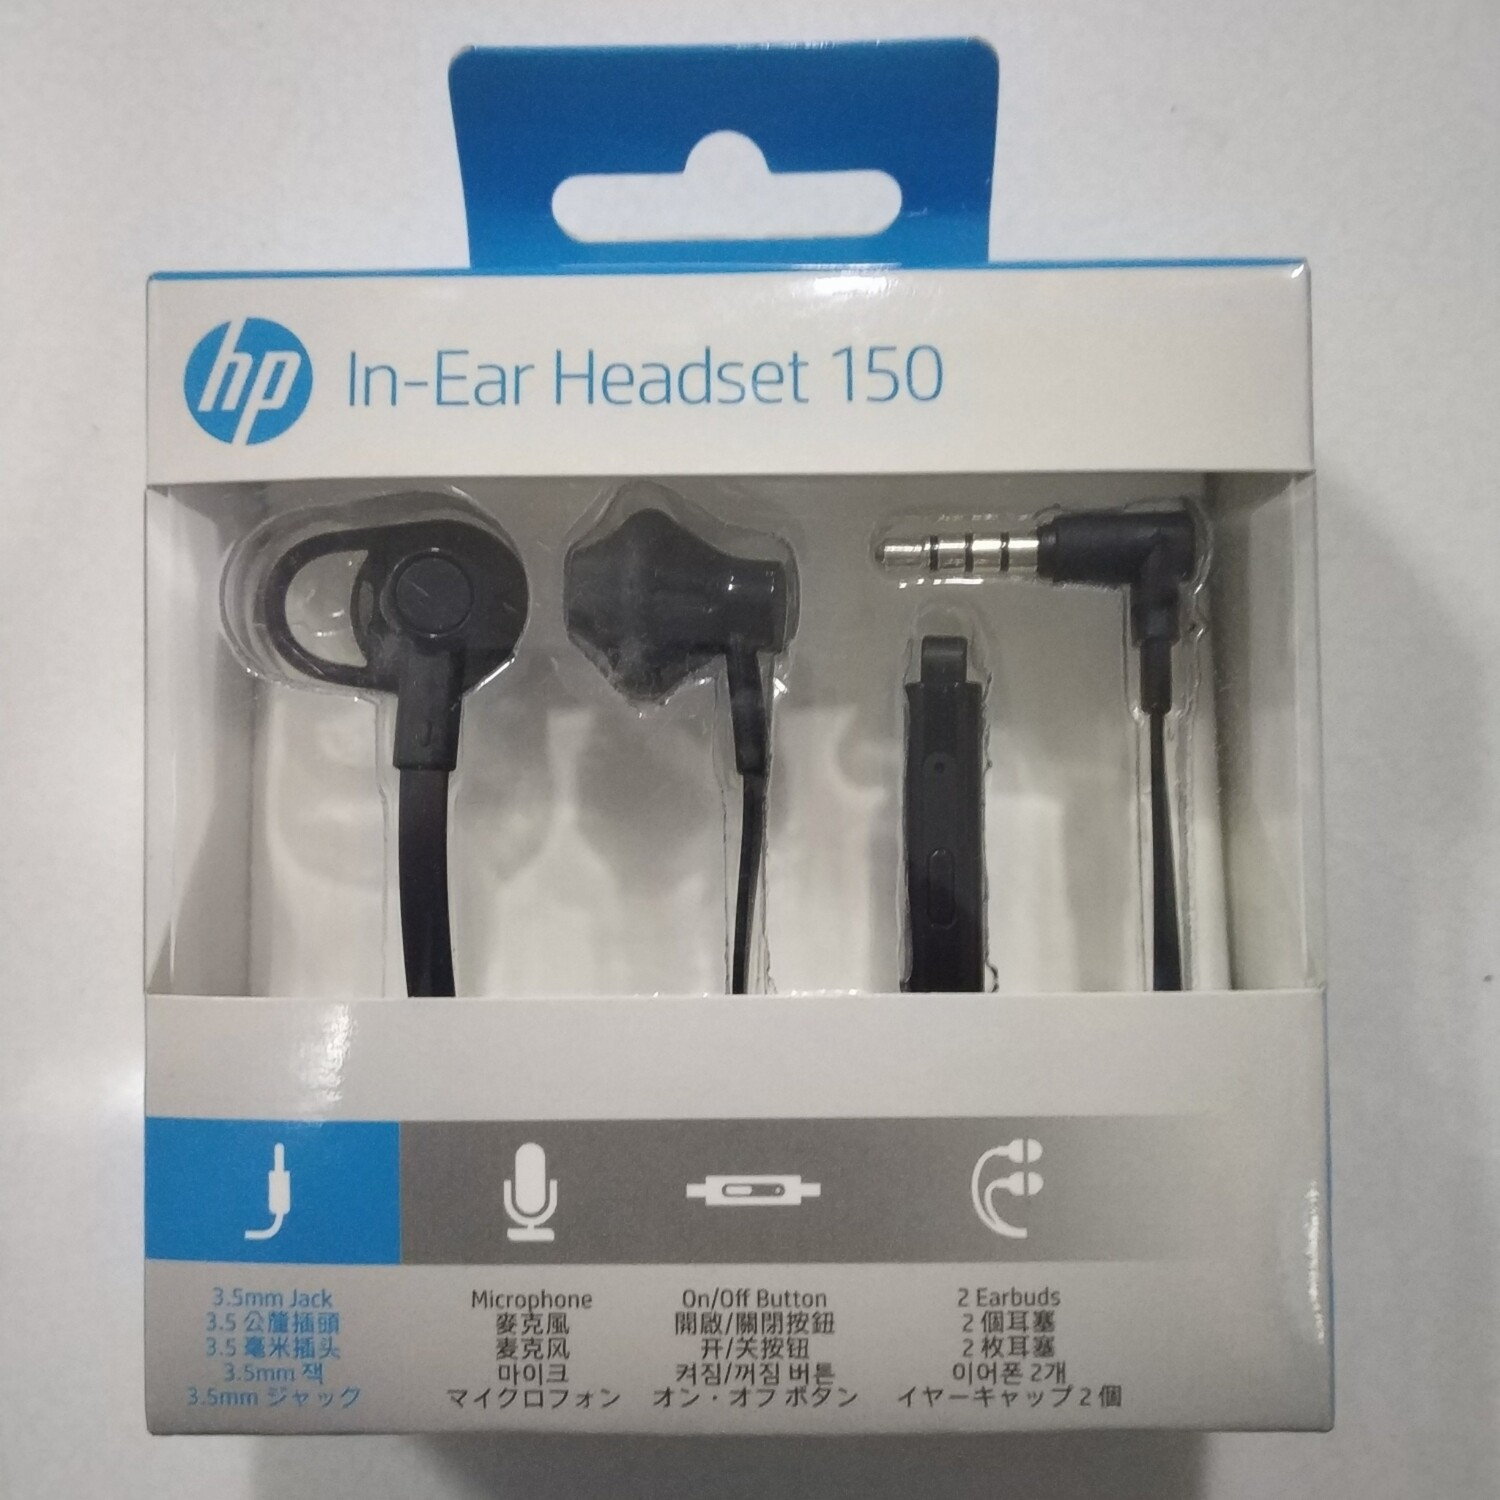 HP 150 in-Ear Headset, Black